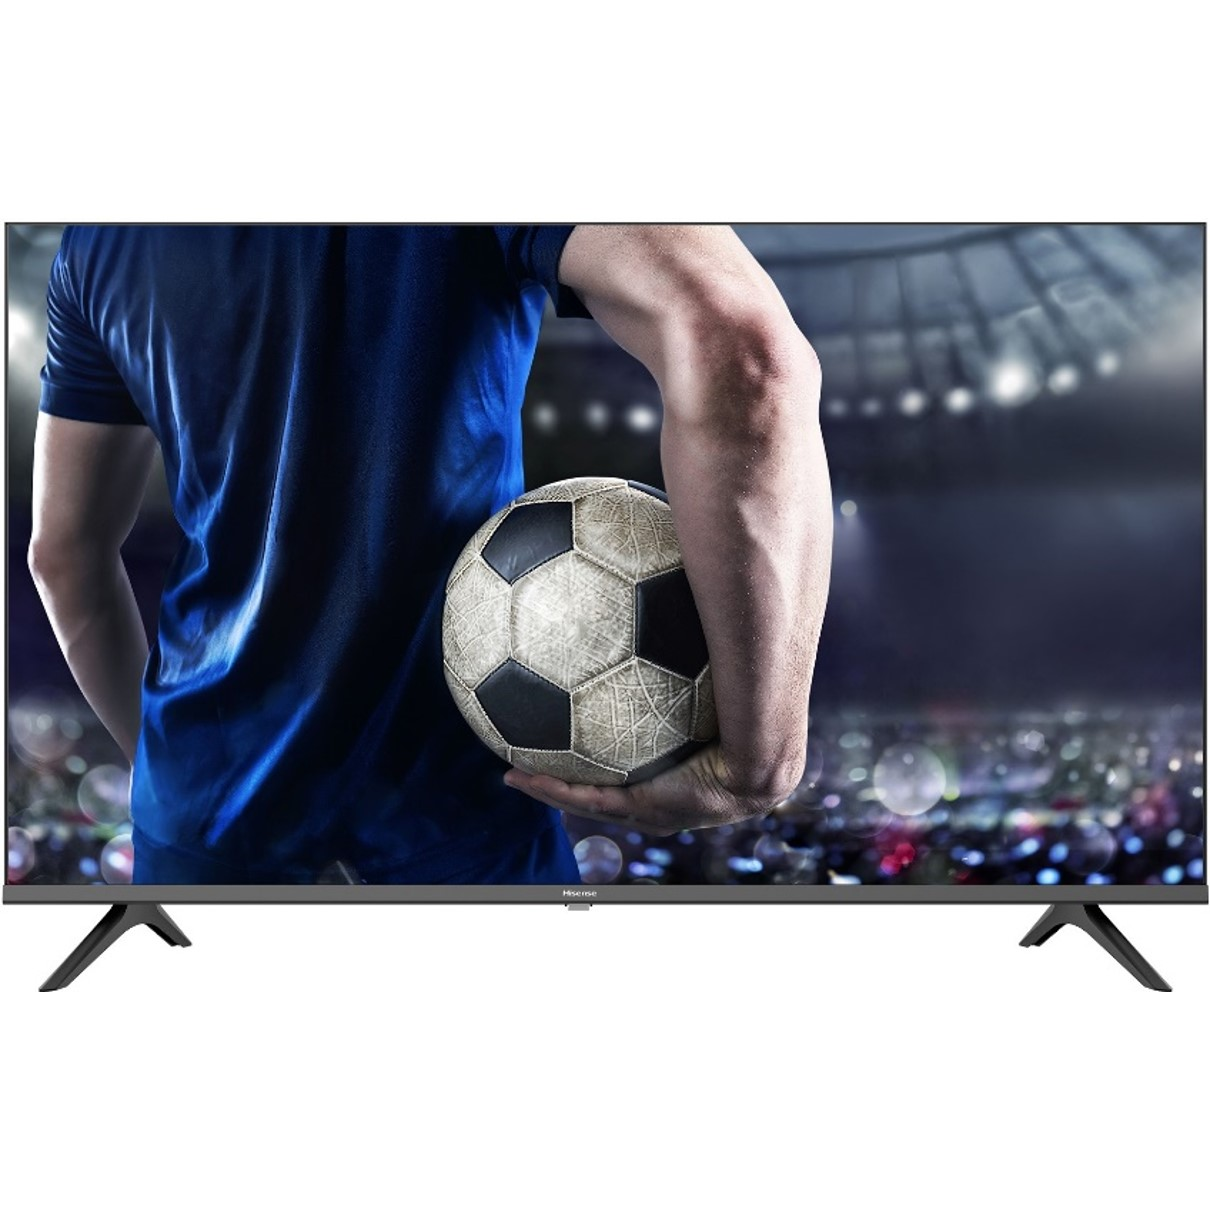 "TV HISENSE 32"" LED HD READY/ 32A5100F/ 2 HDMI/ 1 USB/ DVB-T2/T/C/S2/S"